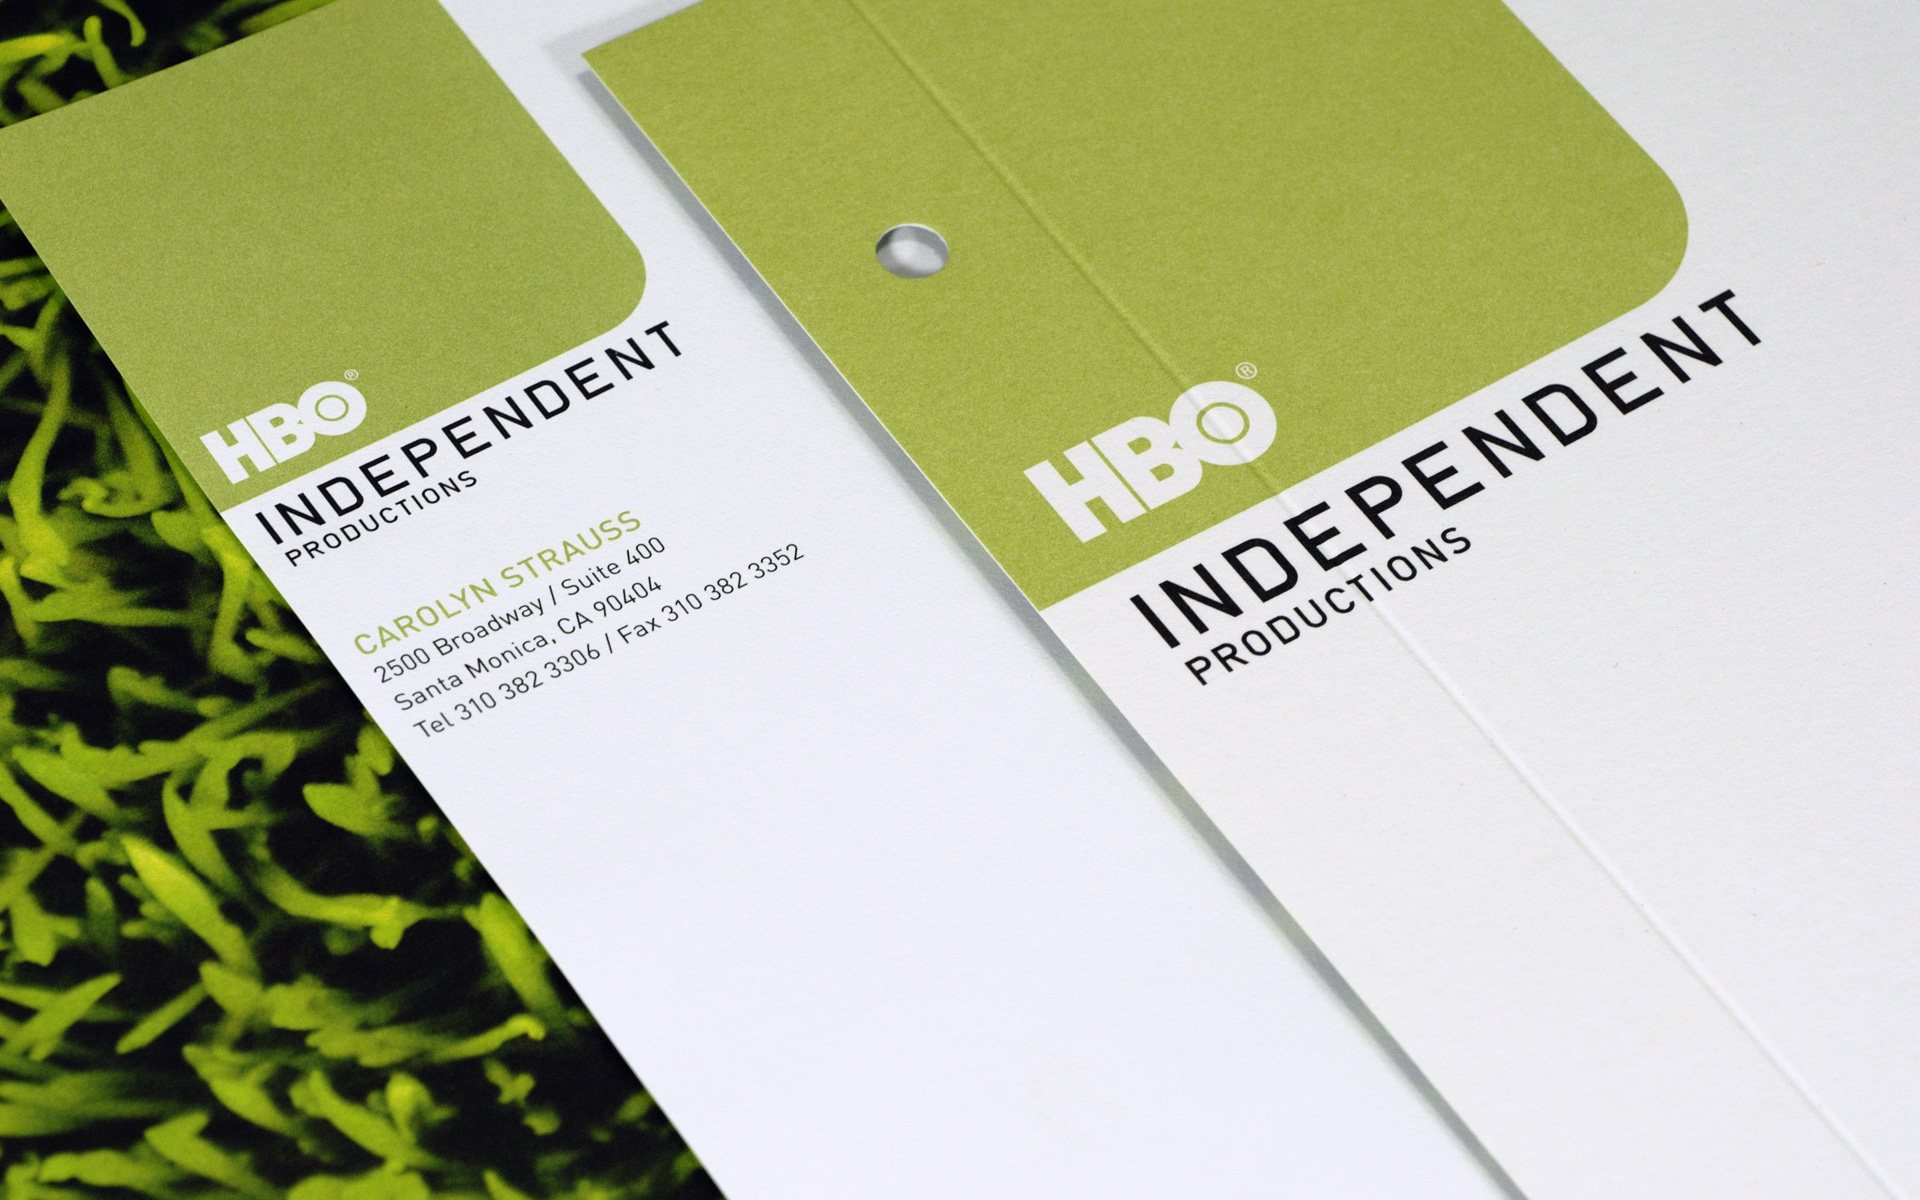 HBO_Independent_02